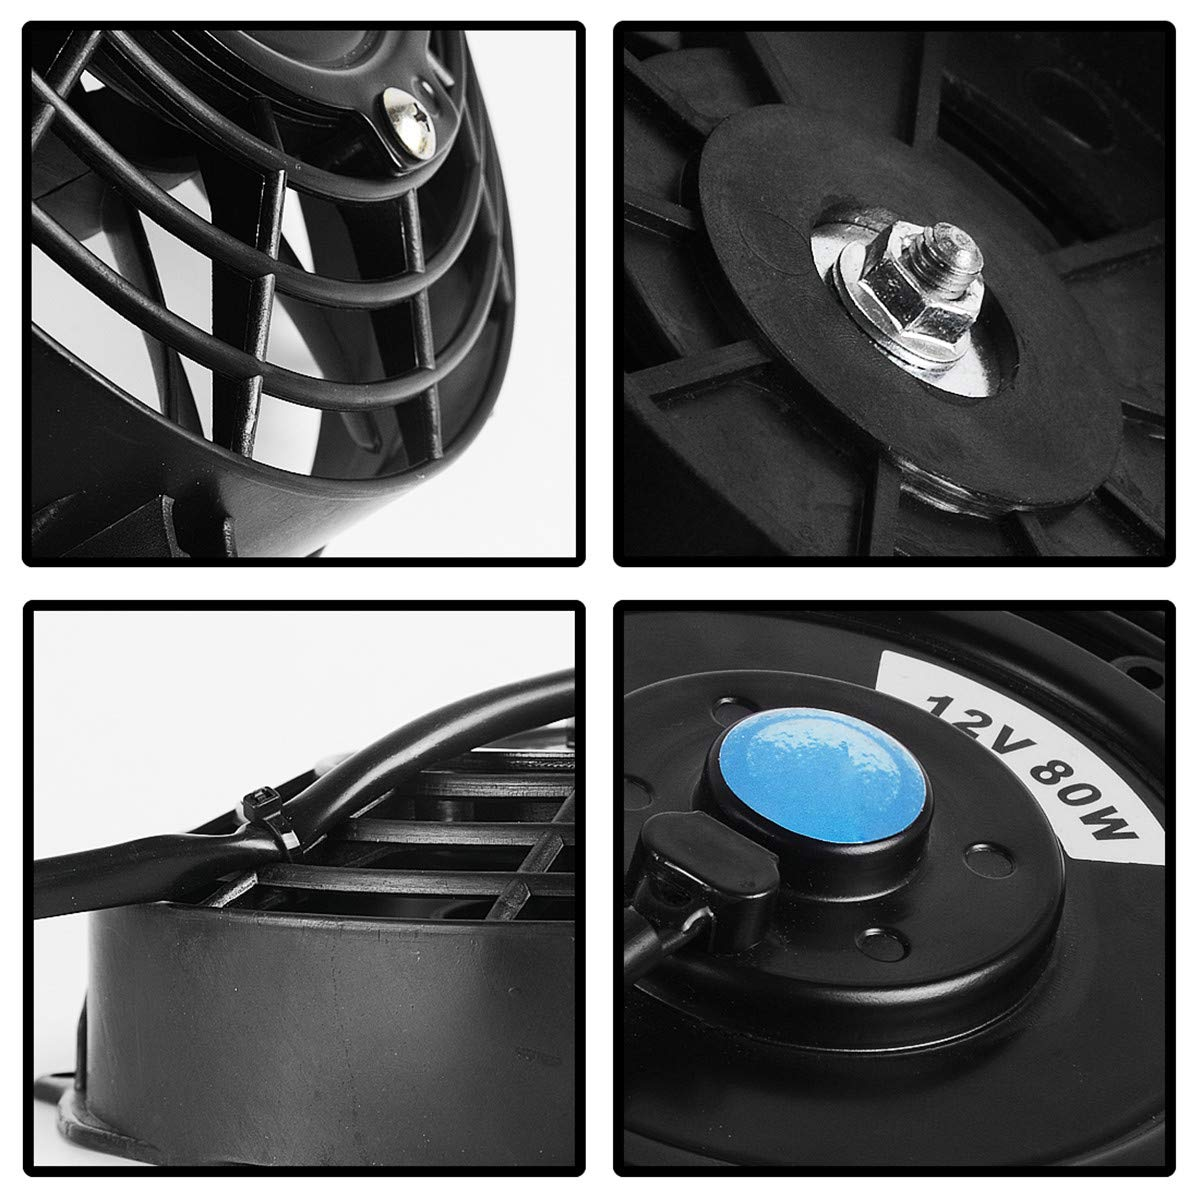 Maxiii 7 Inch Radiator Cooling Fans Black Universal Pull Push Slim Reversible Electric Fan 12V 80W 1350 CFM with Mount Kit